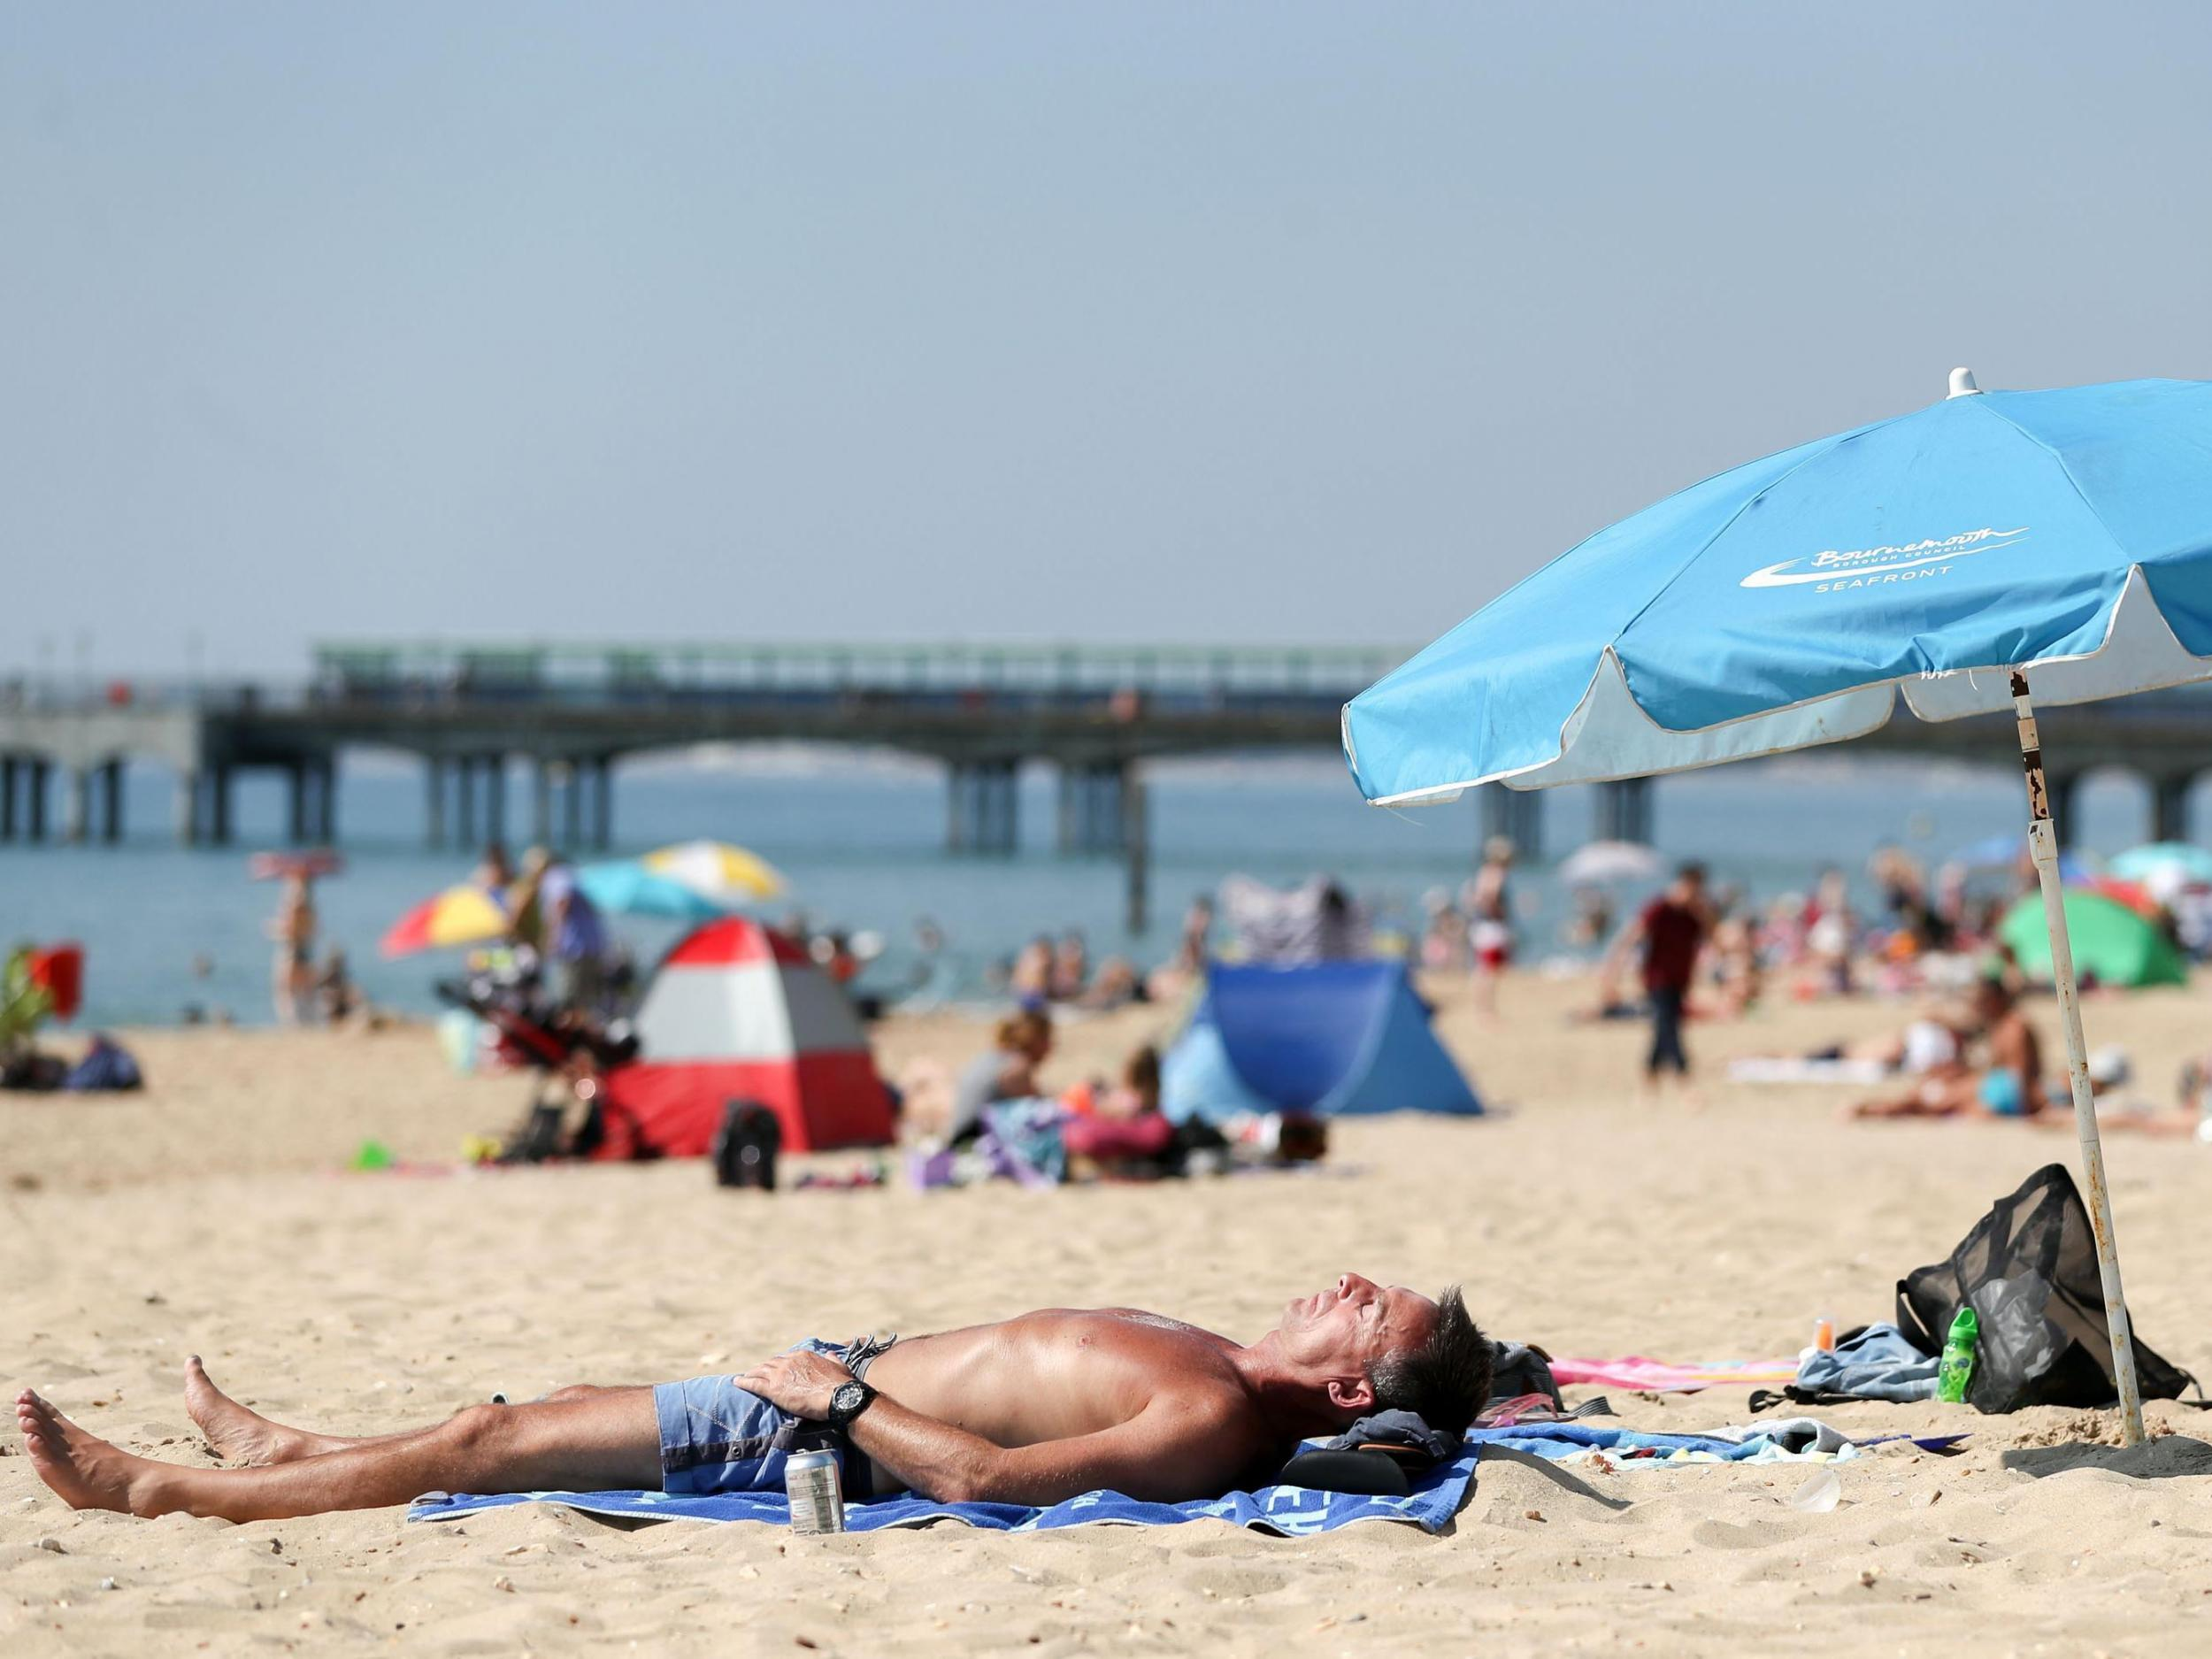 UK tourism hits record high as weak pound lures overseas holidaymakers